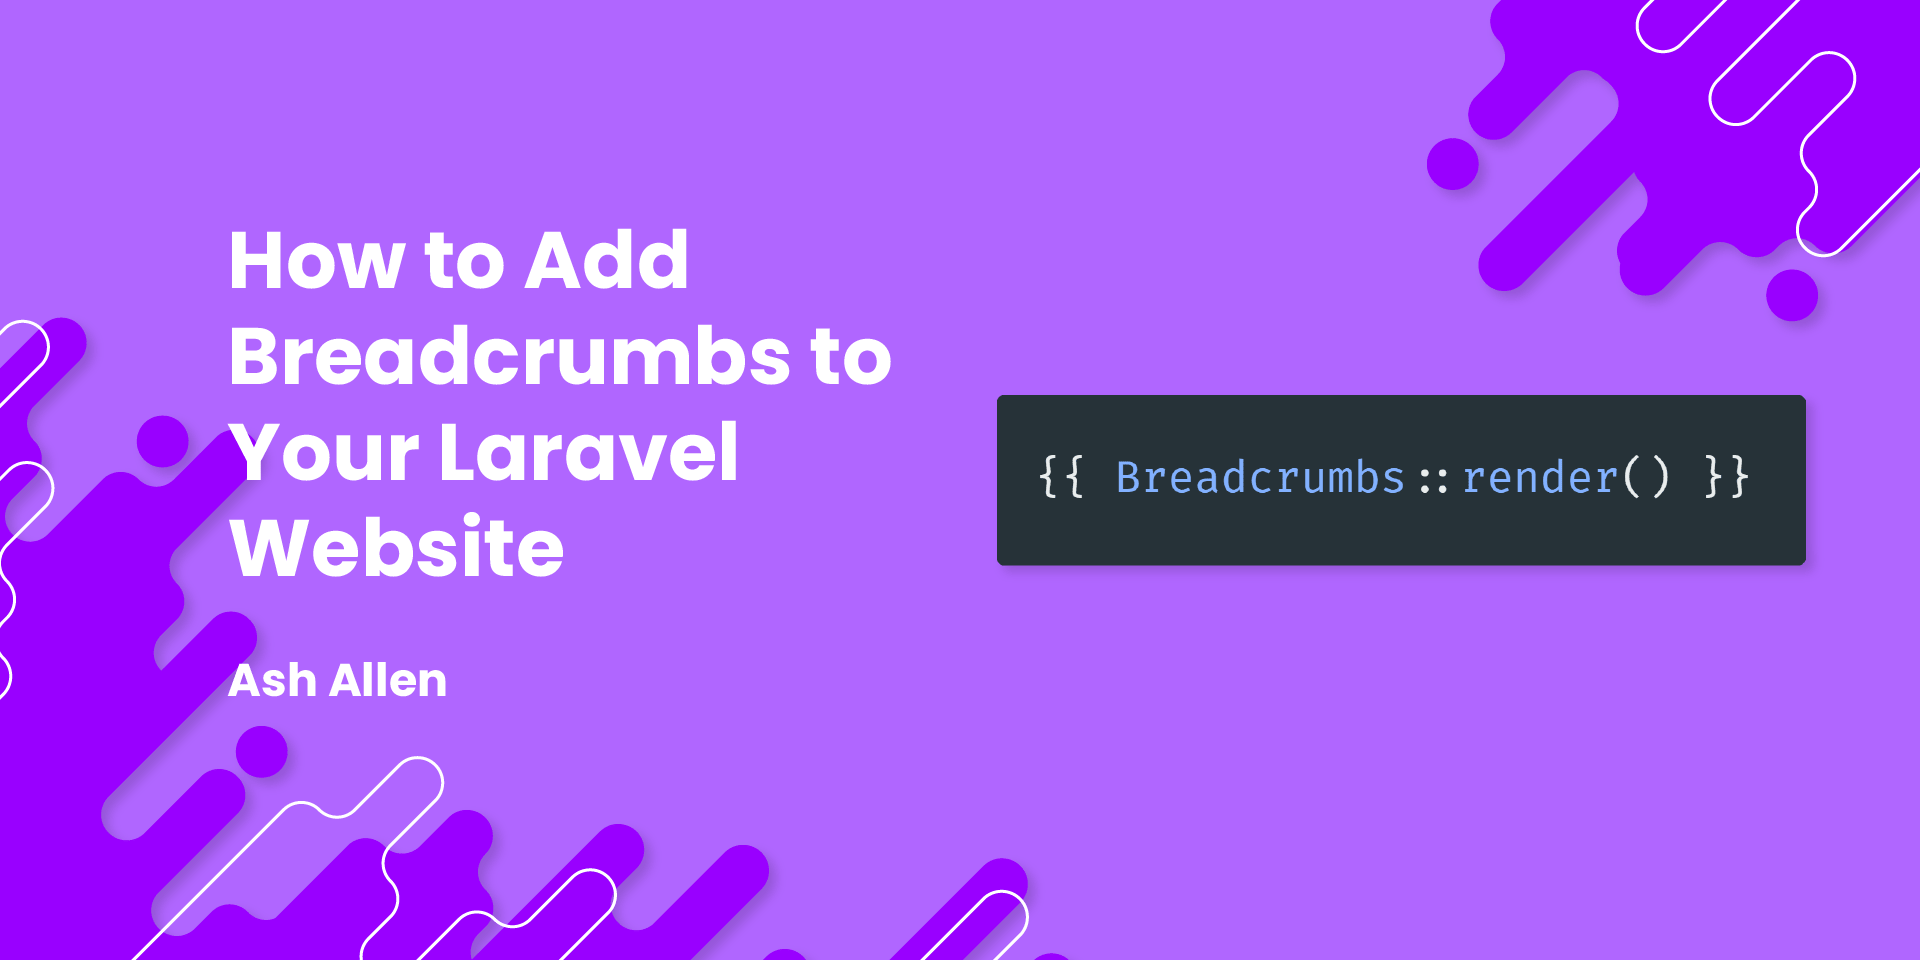 Learn how to add breadcrumbs to your website using the diglactic/laravel-breadcrumbs package. This article also briefly covers the benefits of using breadcrumbs and how they can help your website's visitors.